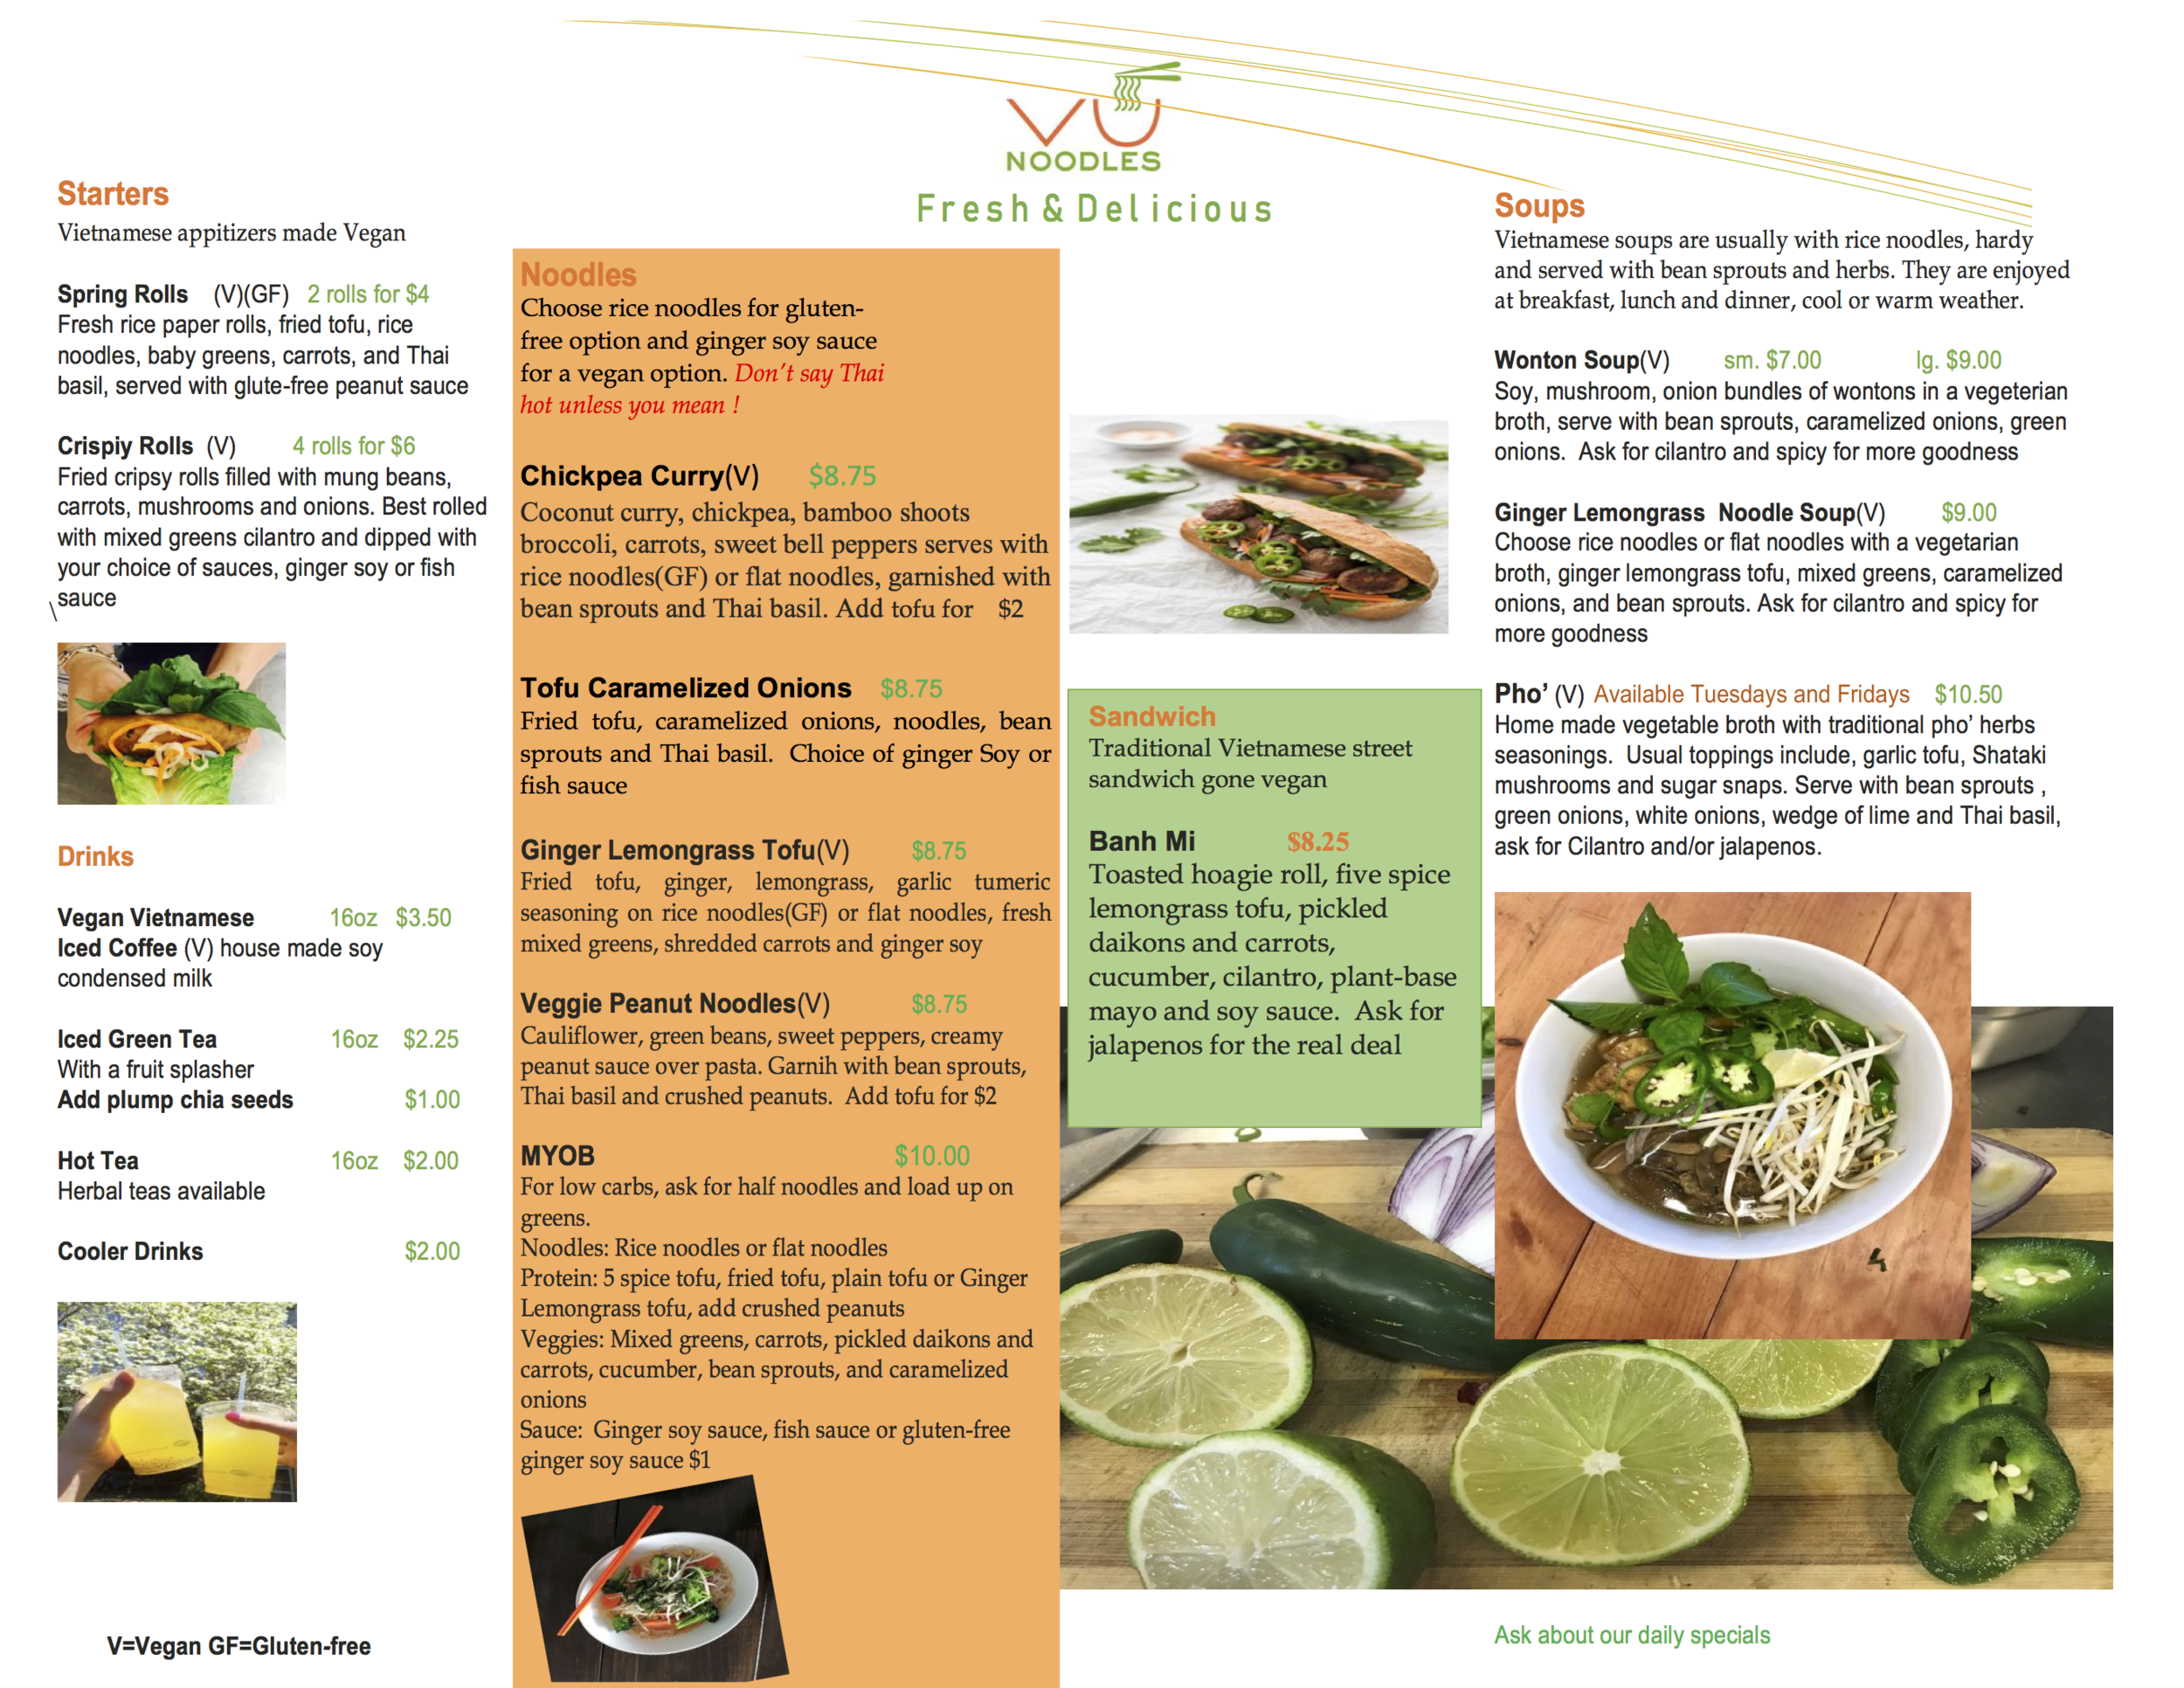 To download a copy of the menu, simply click on the image.